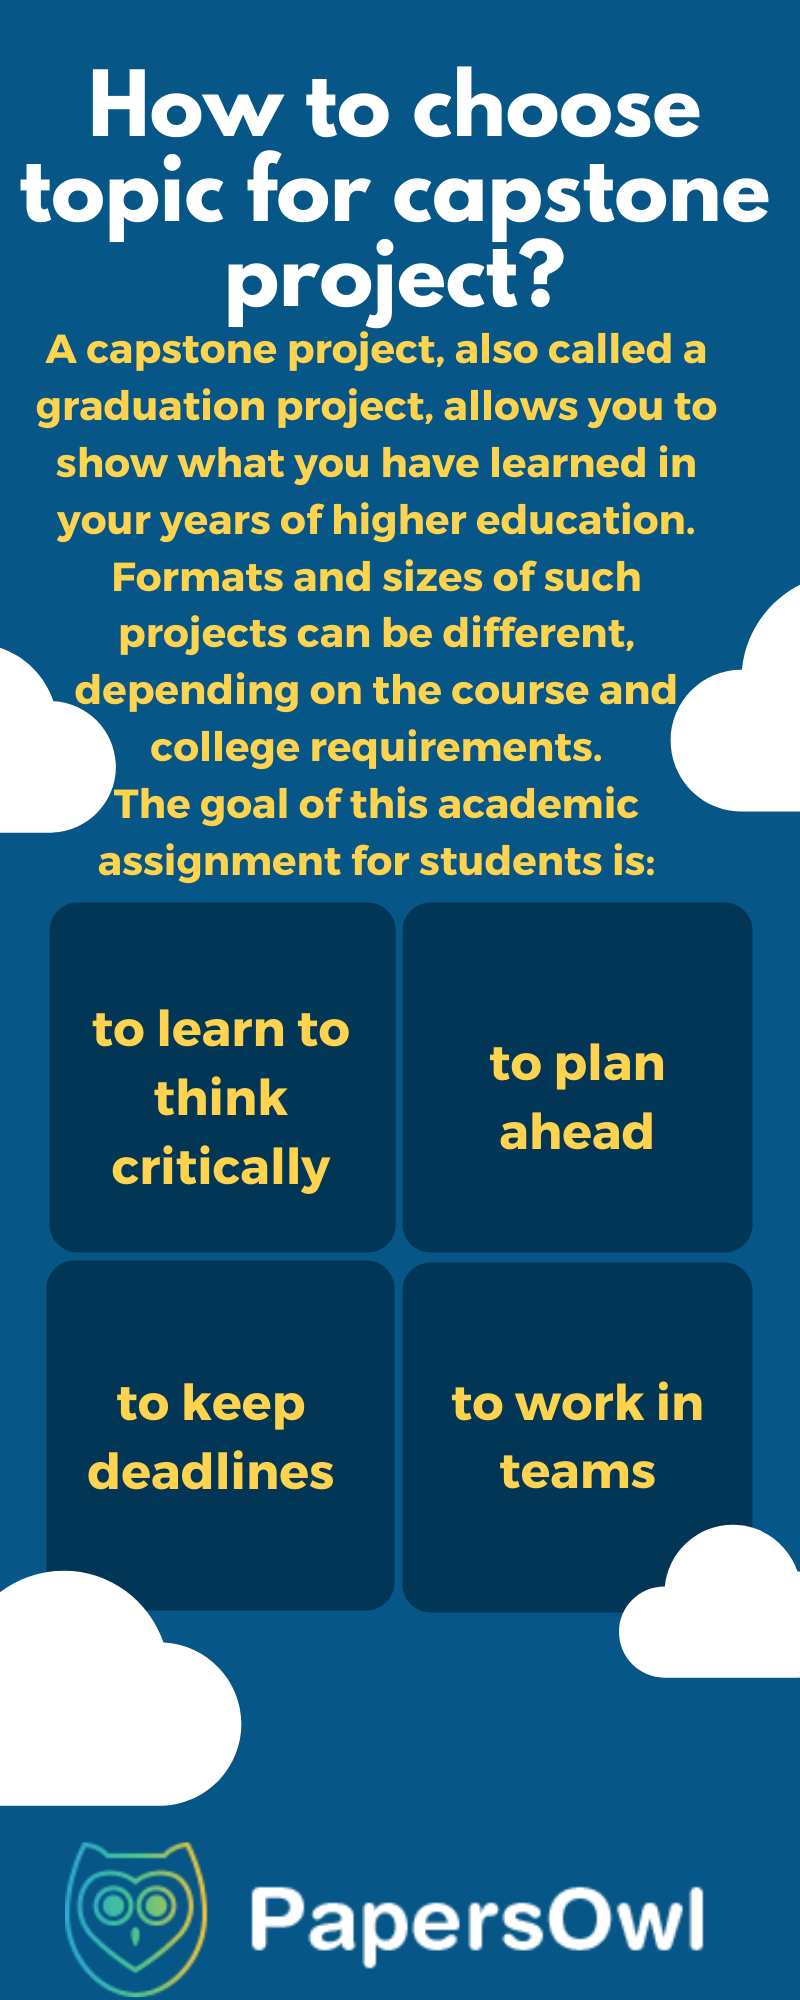 How To Choose Topic For Capstone Project Nursing Research College Essay Tip Help Accounting Dissertation Ideas Idea